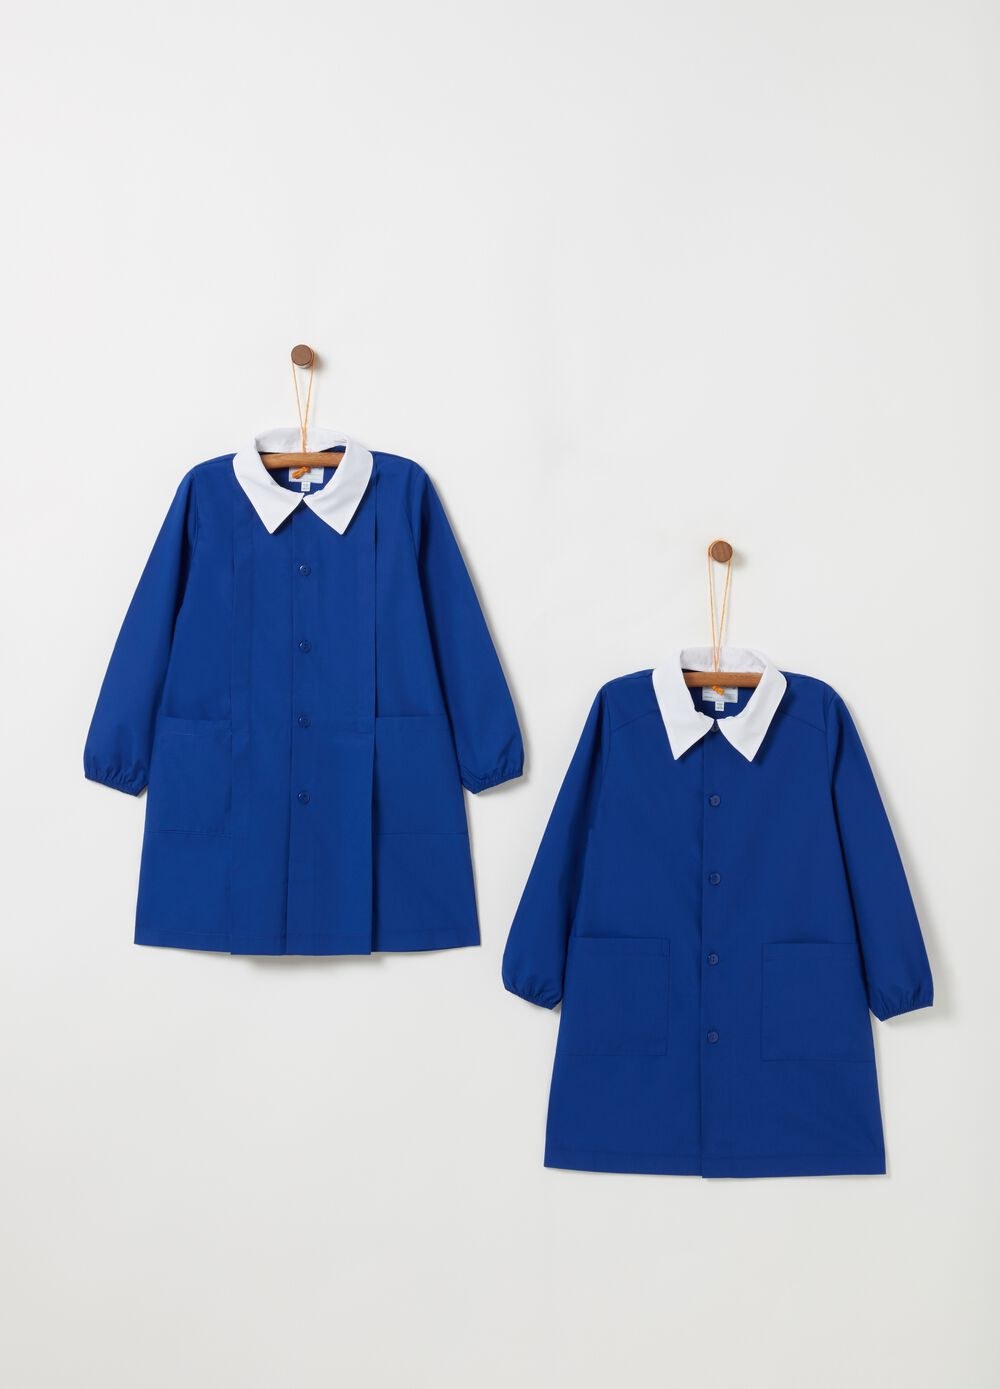 Pack of two smocks with classic collar and pockets